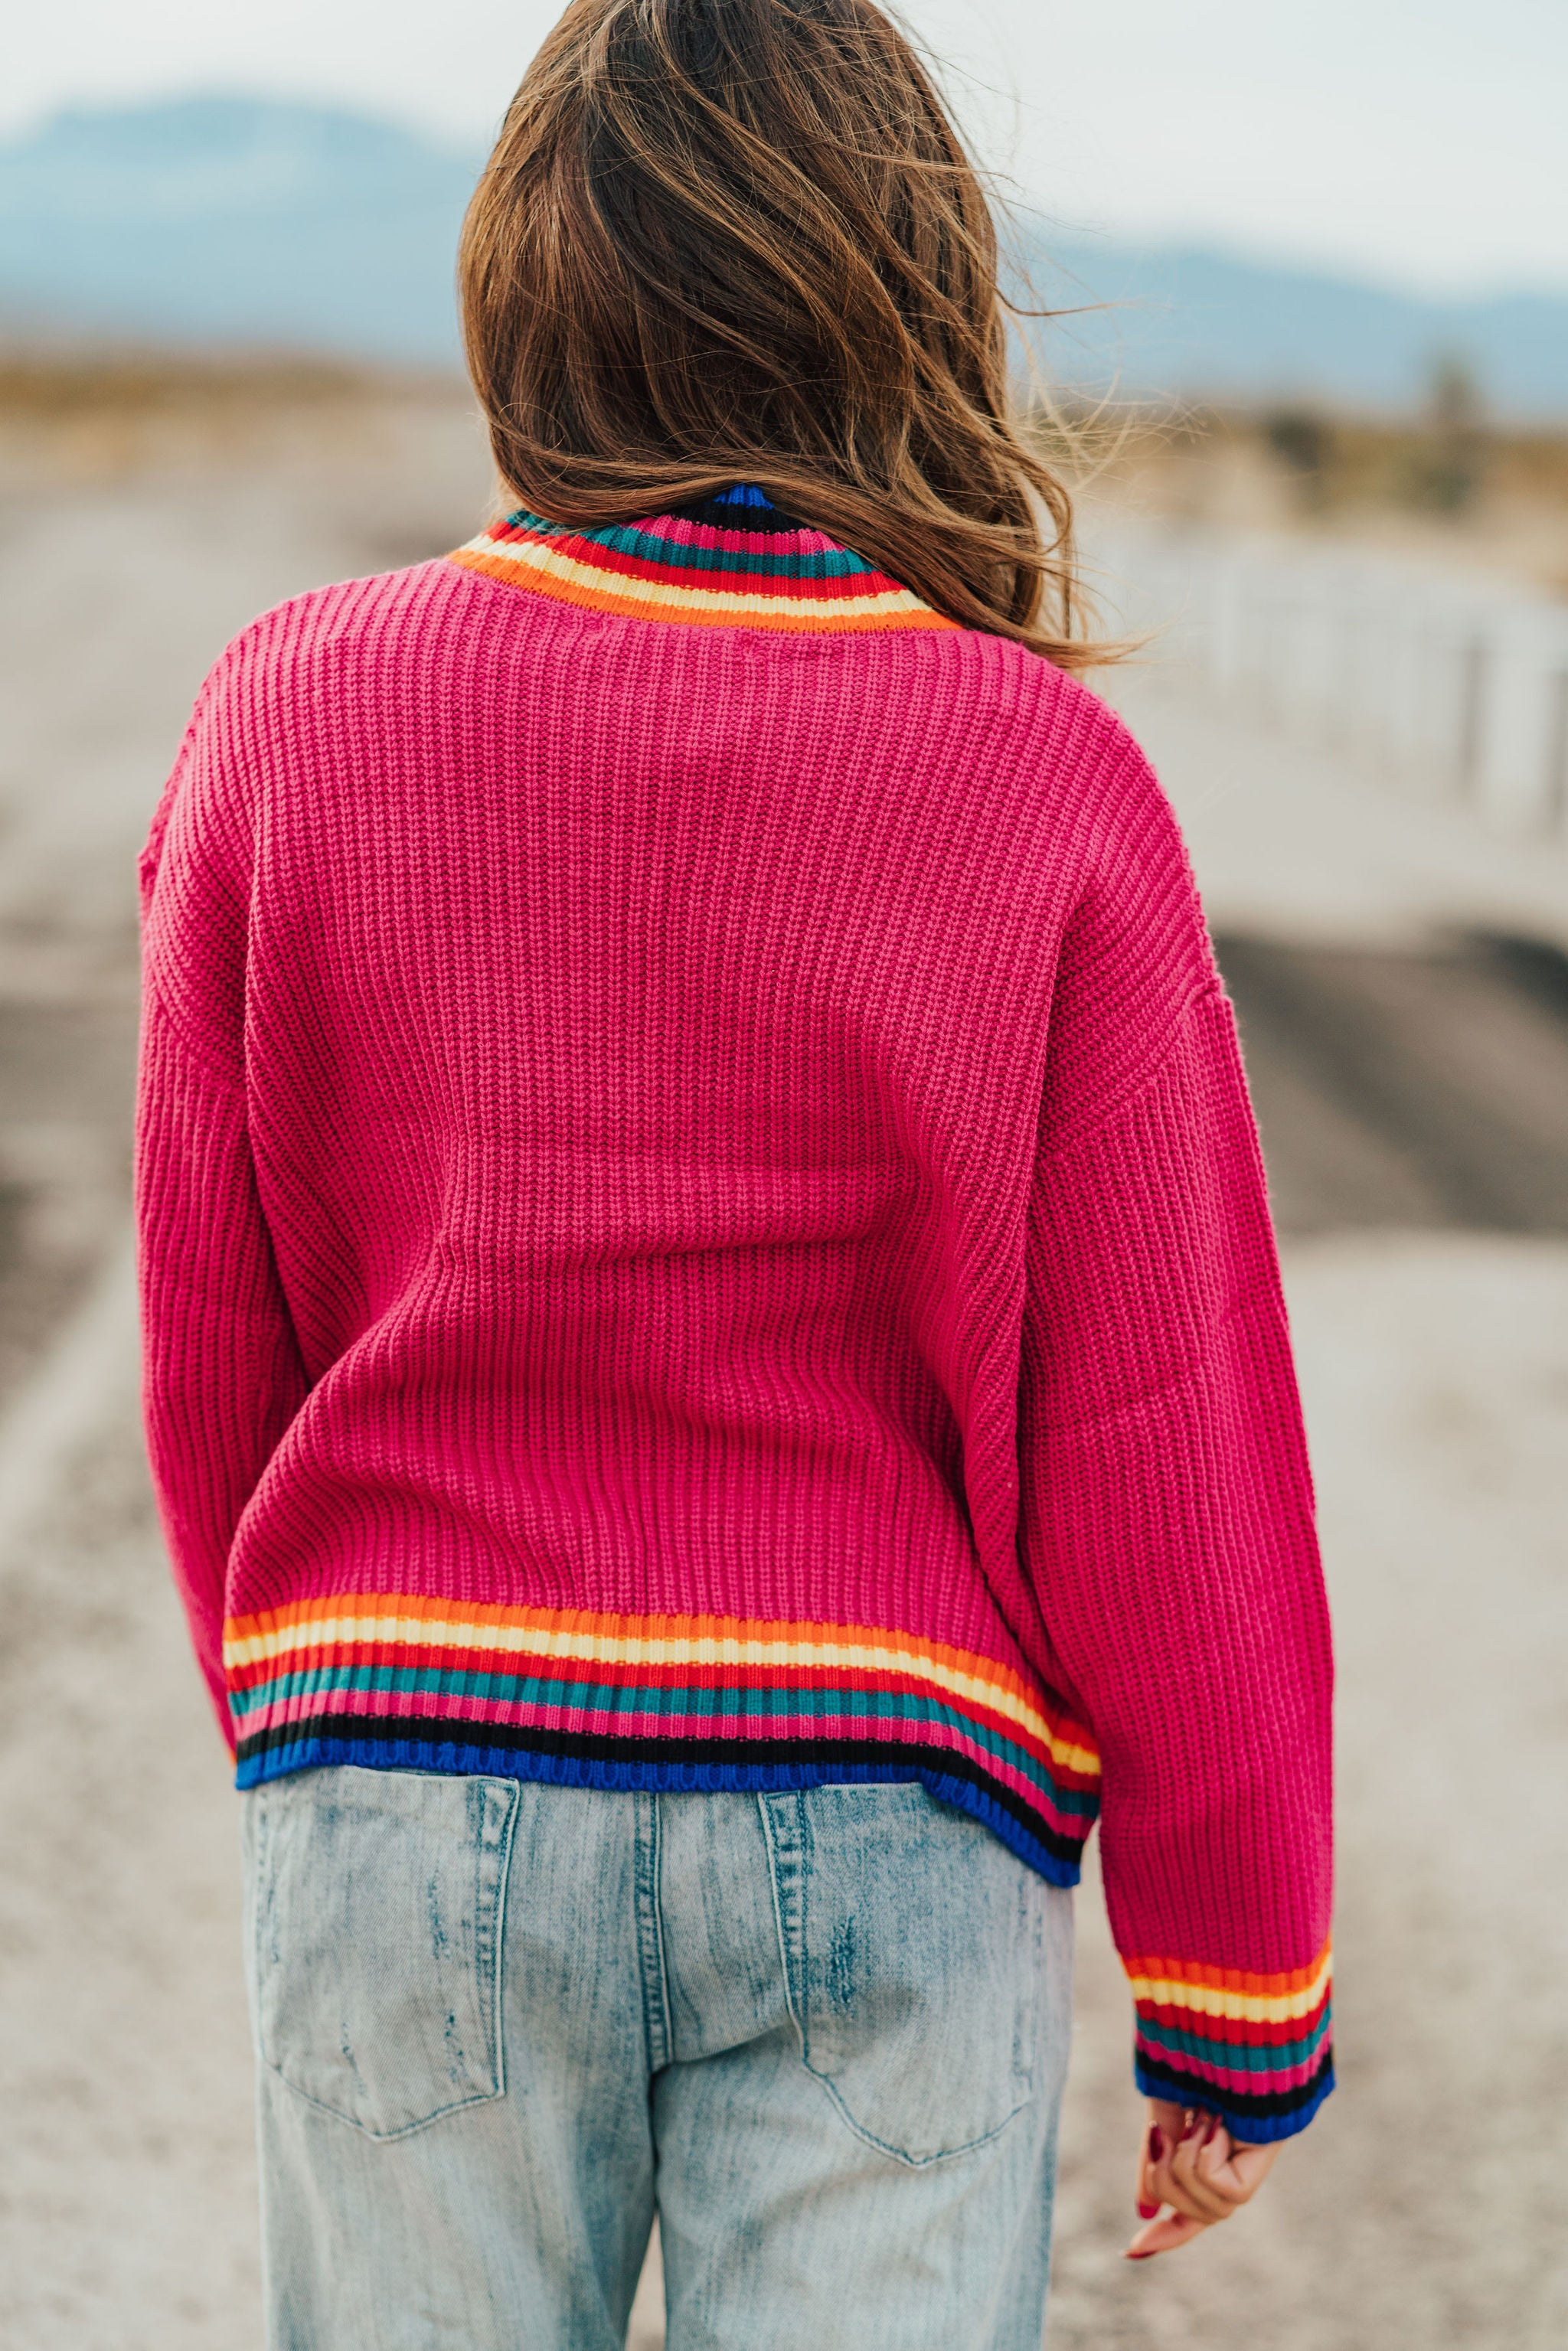 AL CARRAWAY X PINK DESERT - THE ROSALIE STRIPE DETAIL SWEATER IN FUCHSIA